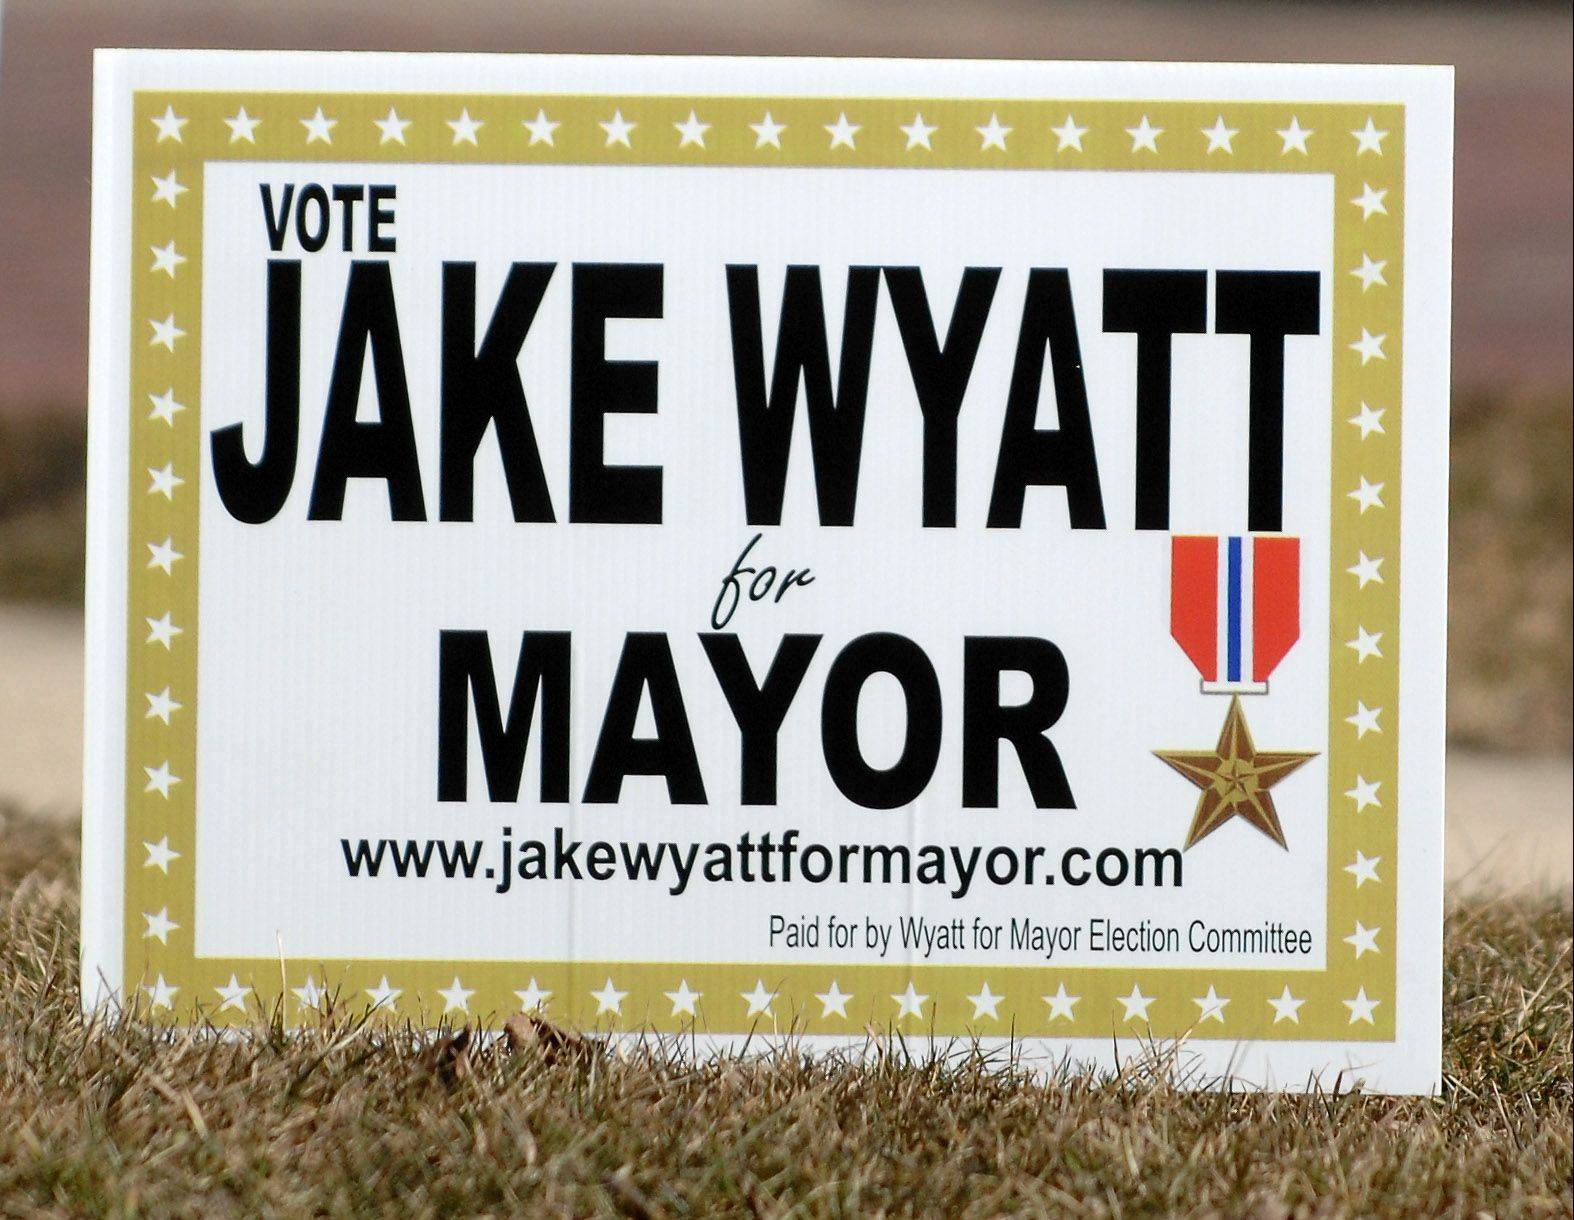 A yard sign for St. Charles mayoral candidate Jake Wyatt.